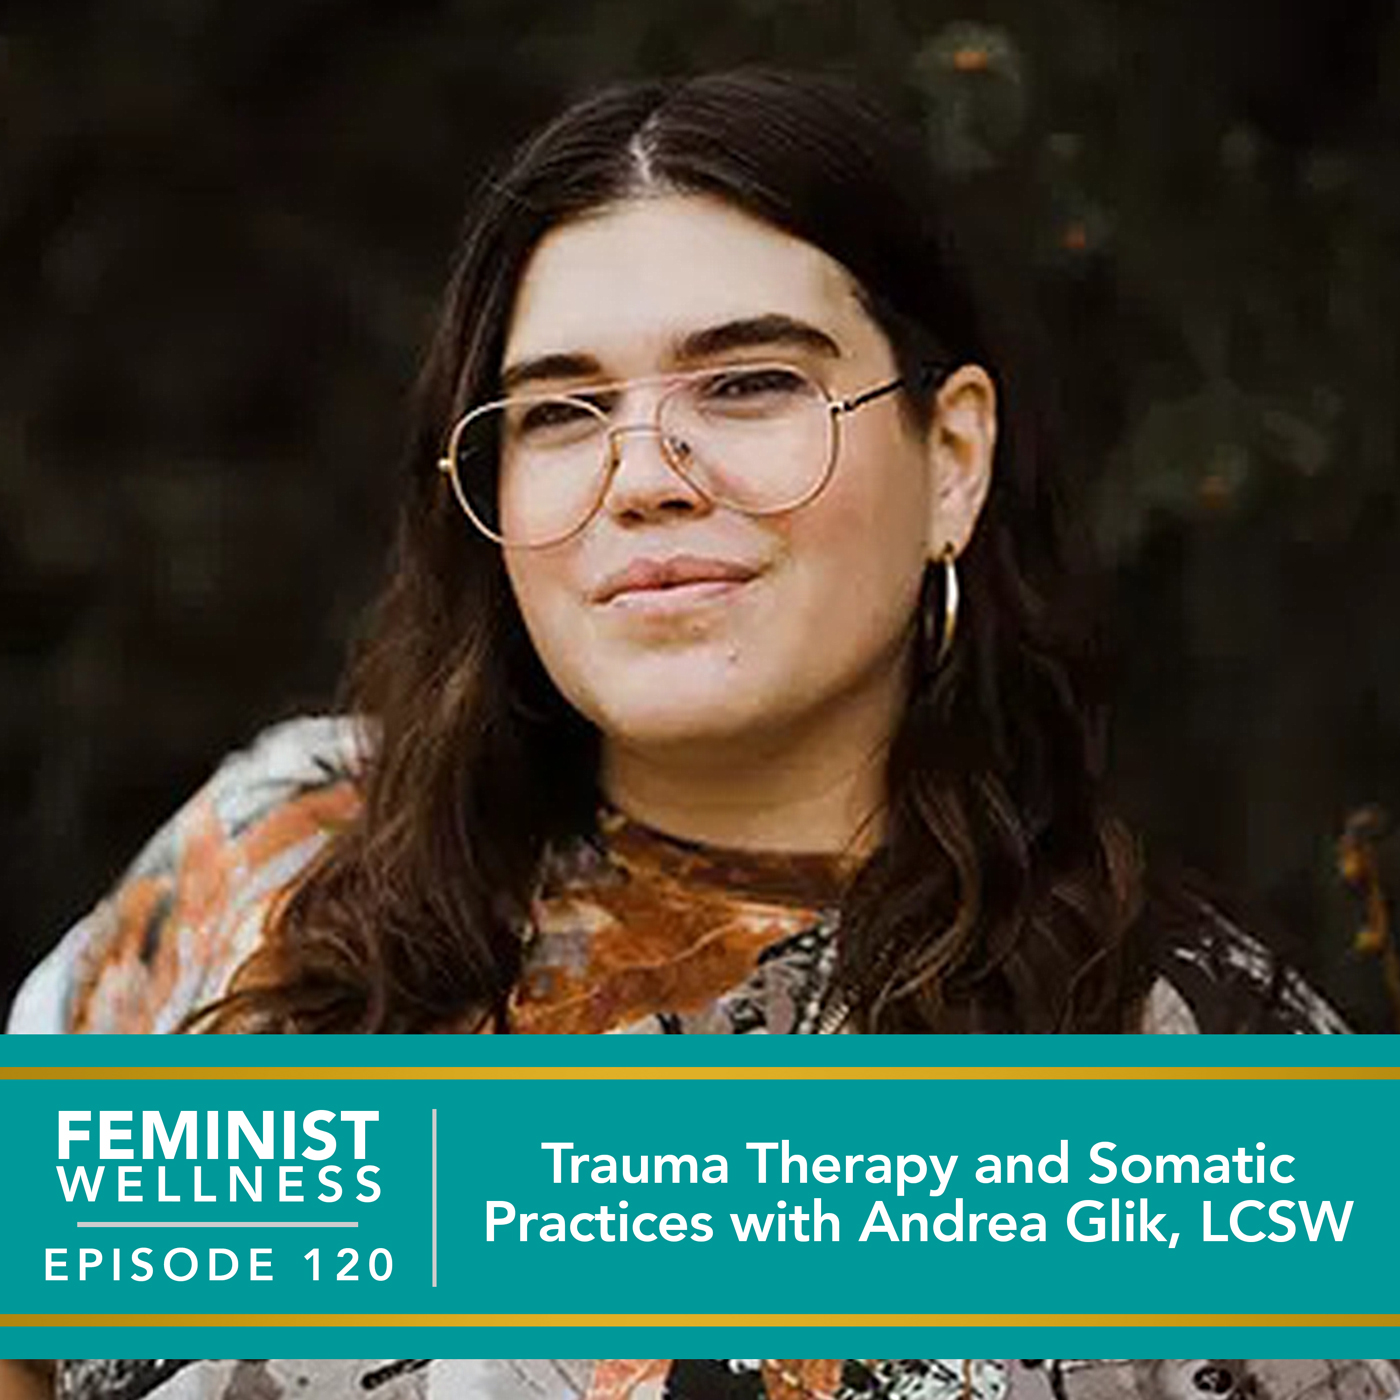 Feminist Wellness with Victoria Albina   Trauma Therapy and Somatic Practices with Andrea Glik, LCSW